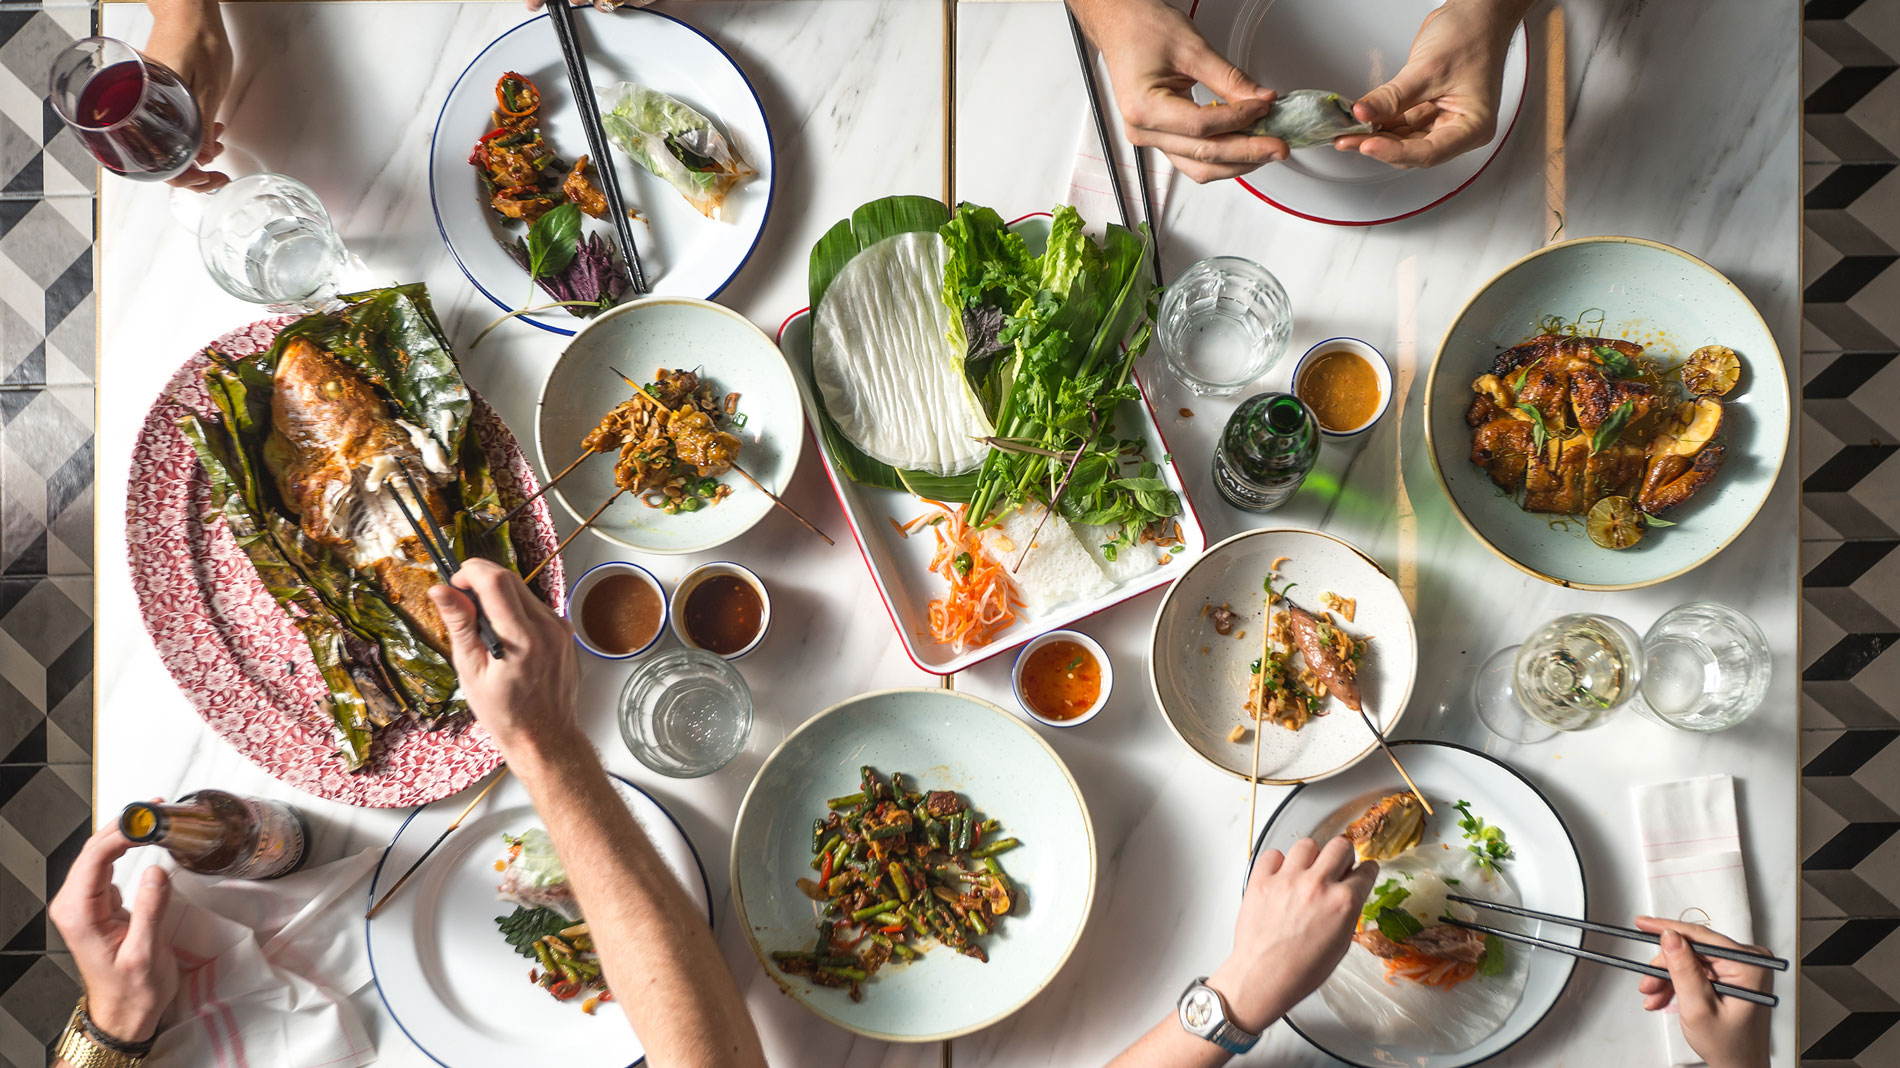 Where to Eat and Drink in Hong Kong, According to Chef Bao La